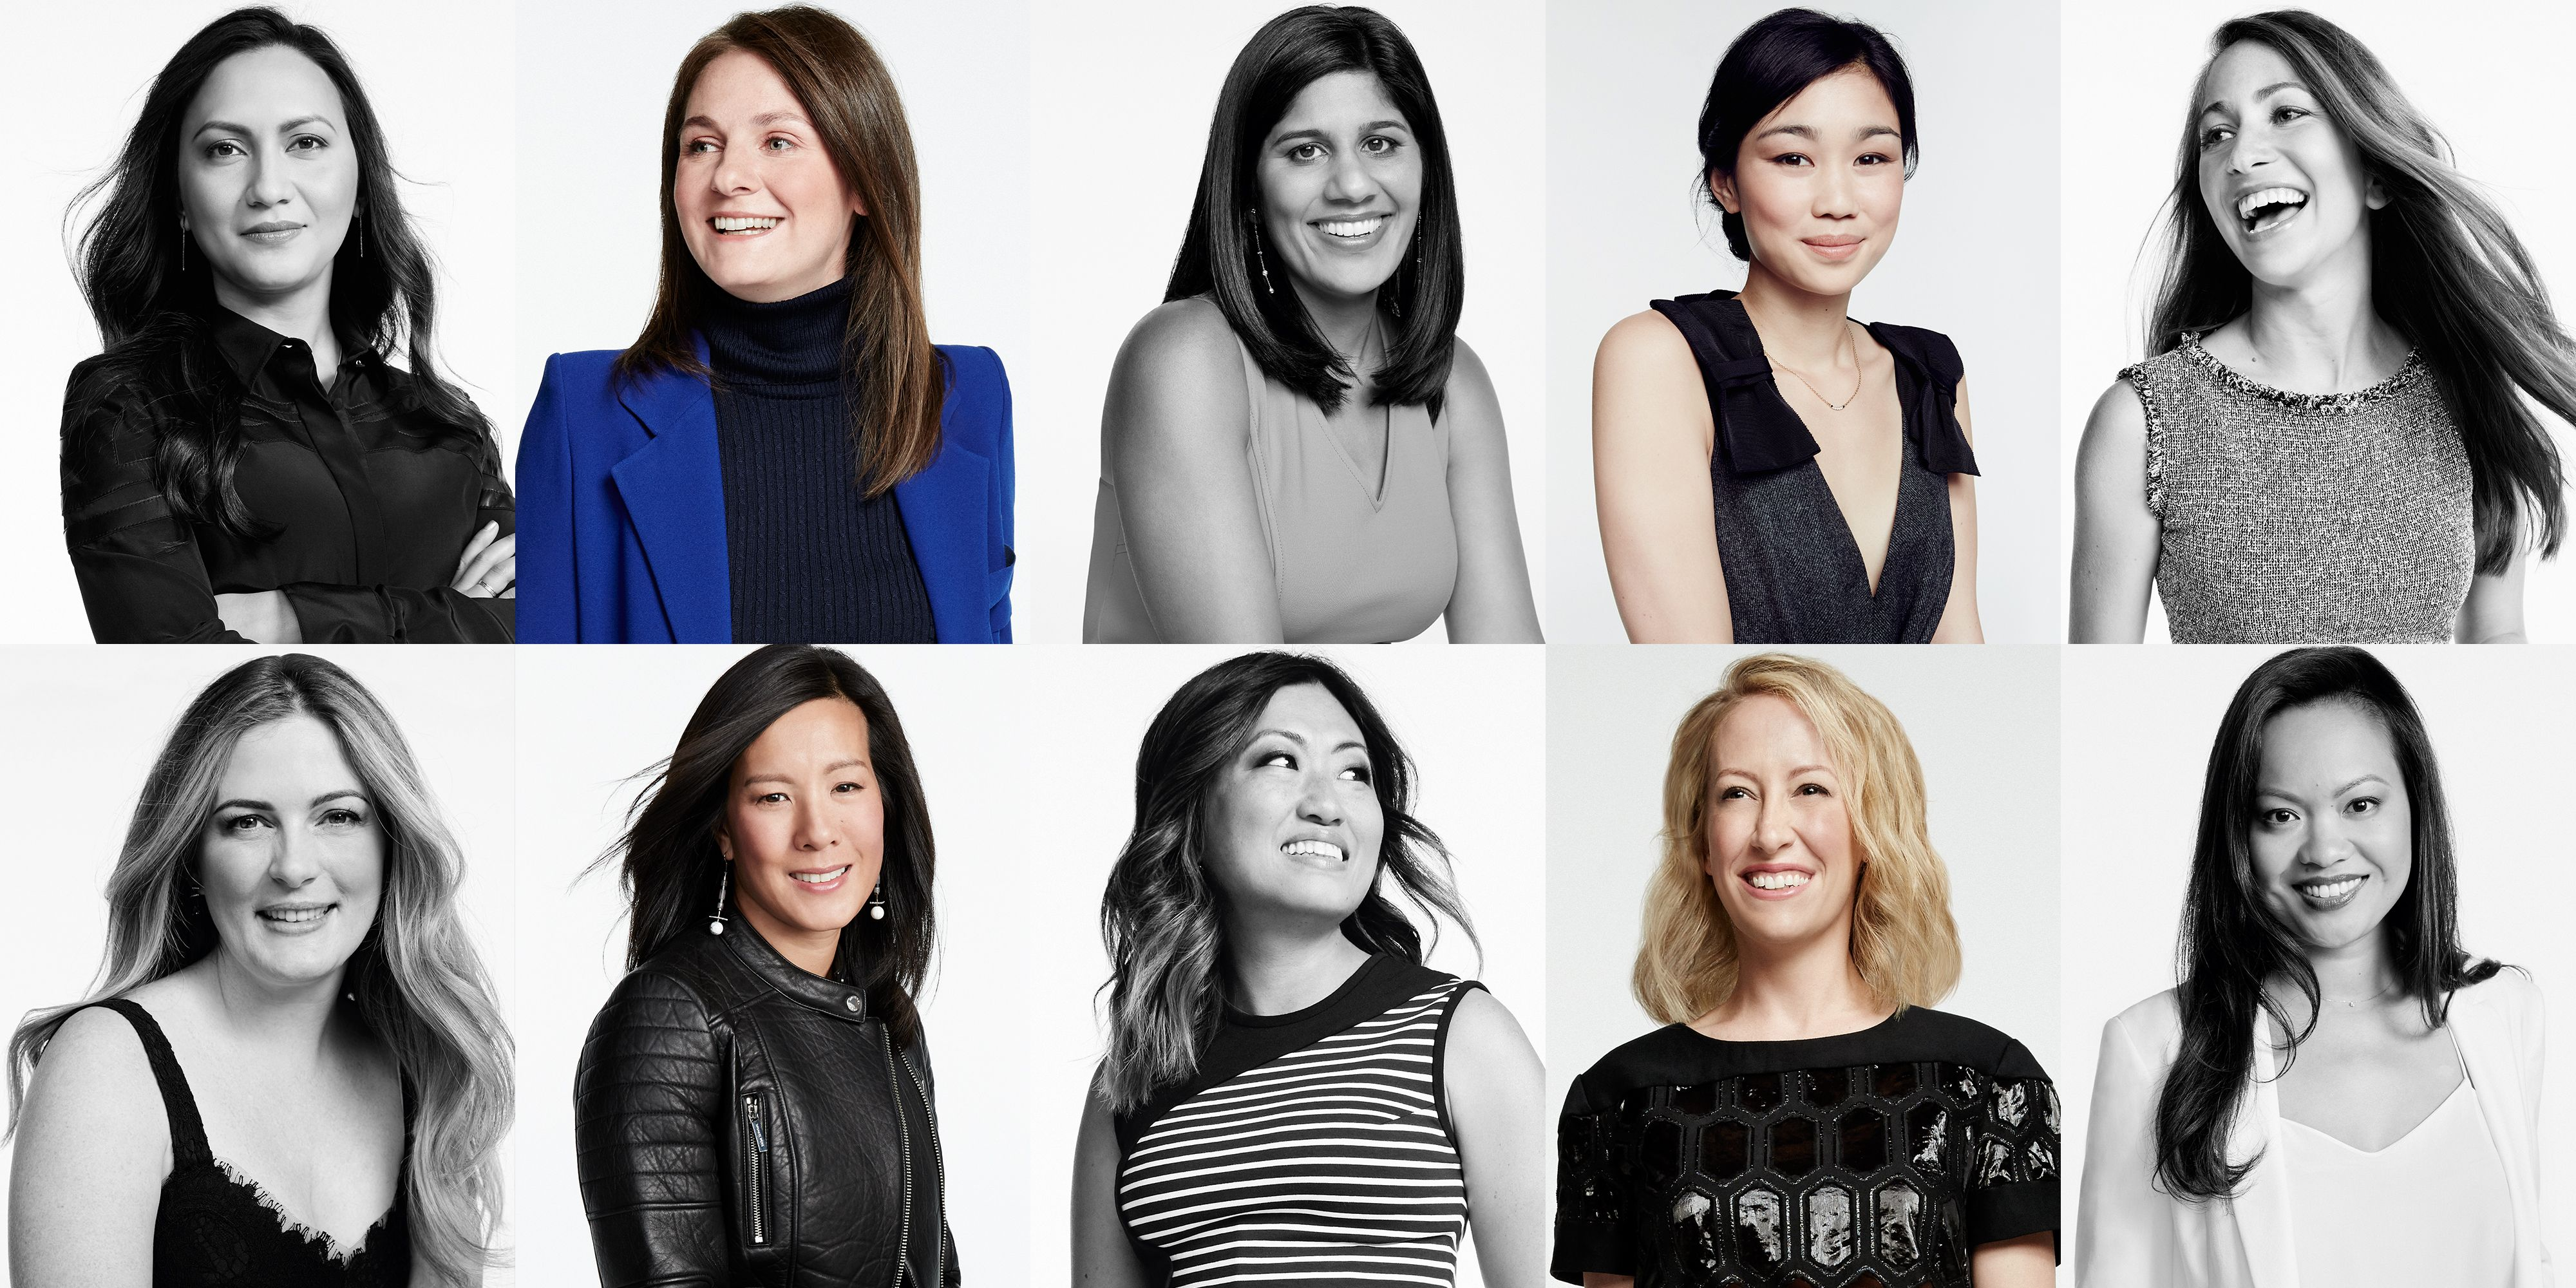 Meet ELLE's 2015 Women in Tech